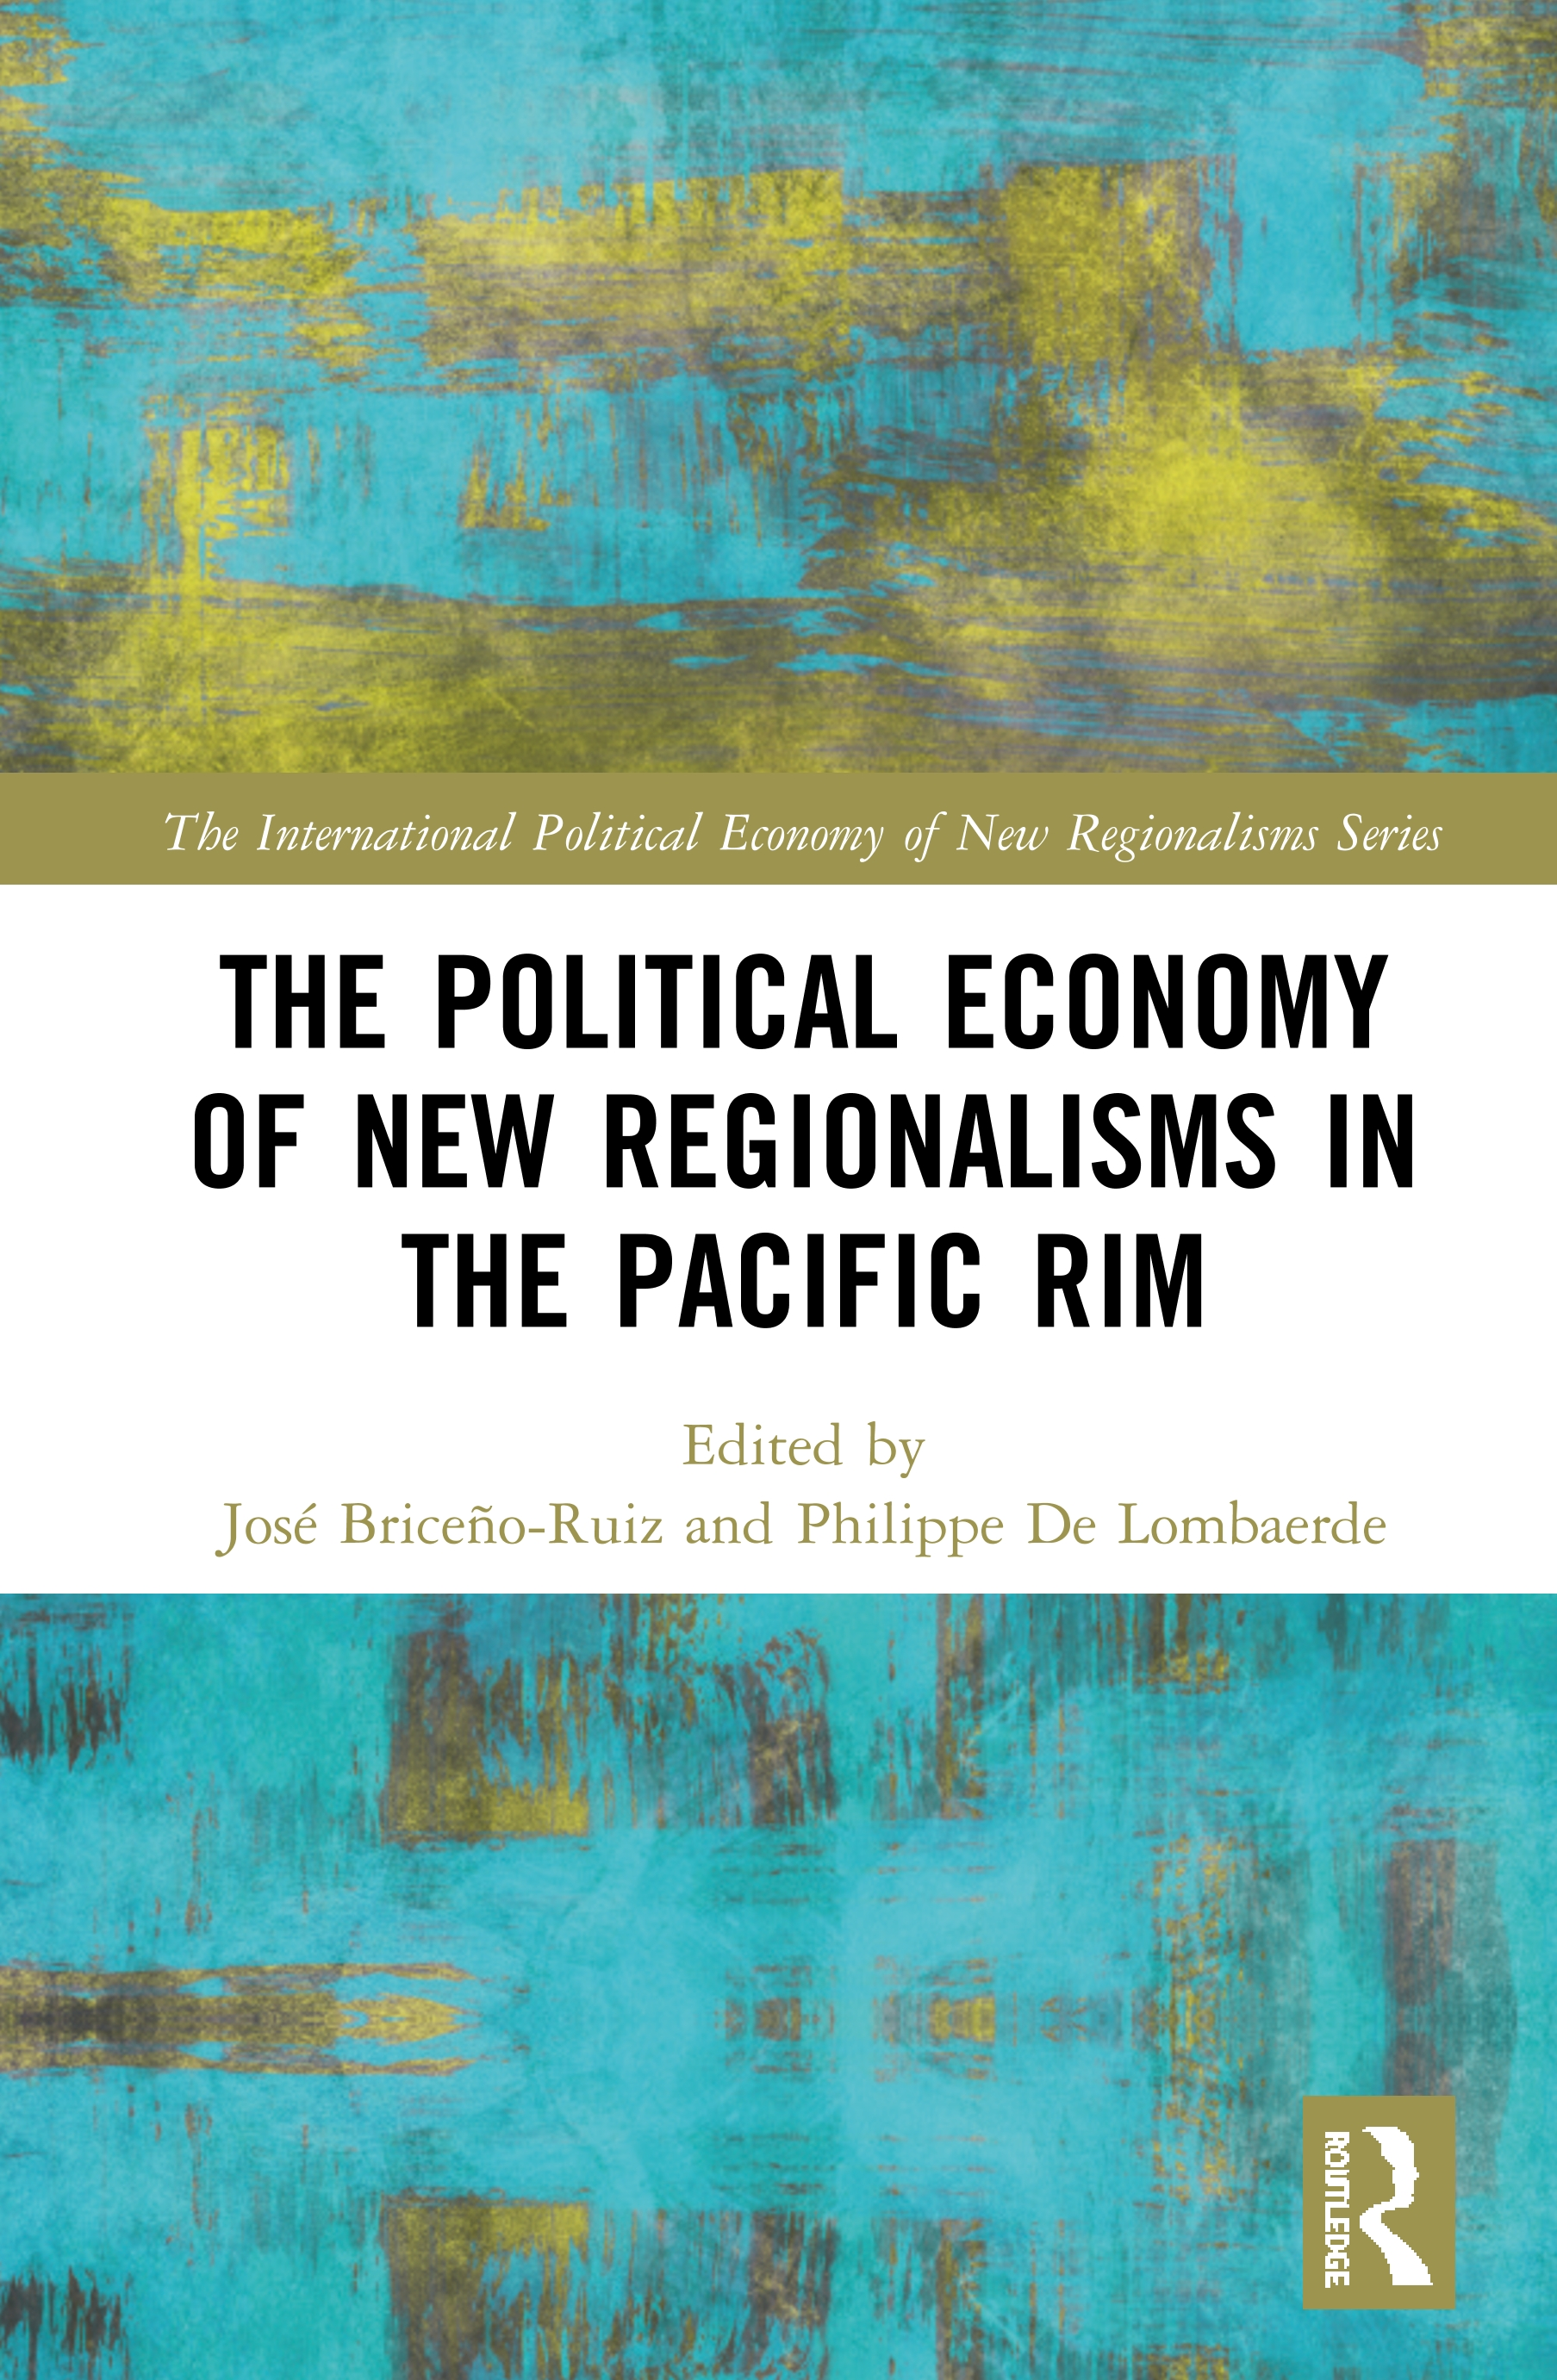 The Political Economy of New Regionalisms in the Pacific Rim book cover